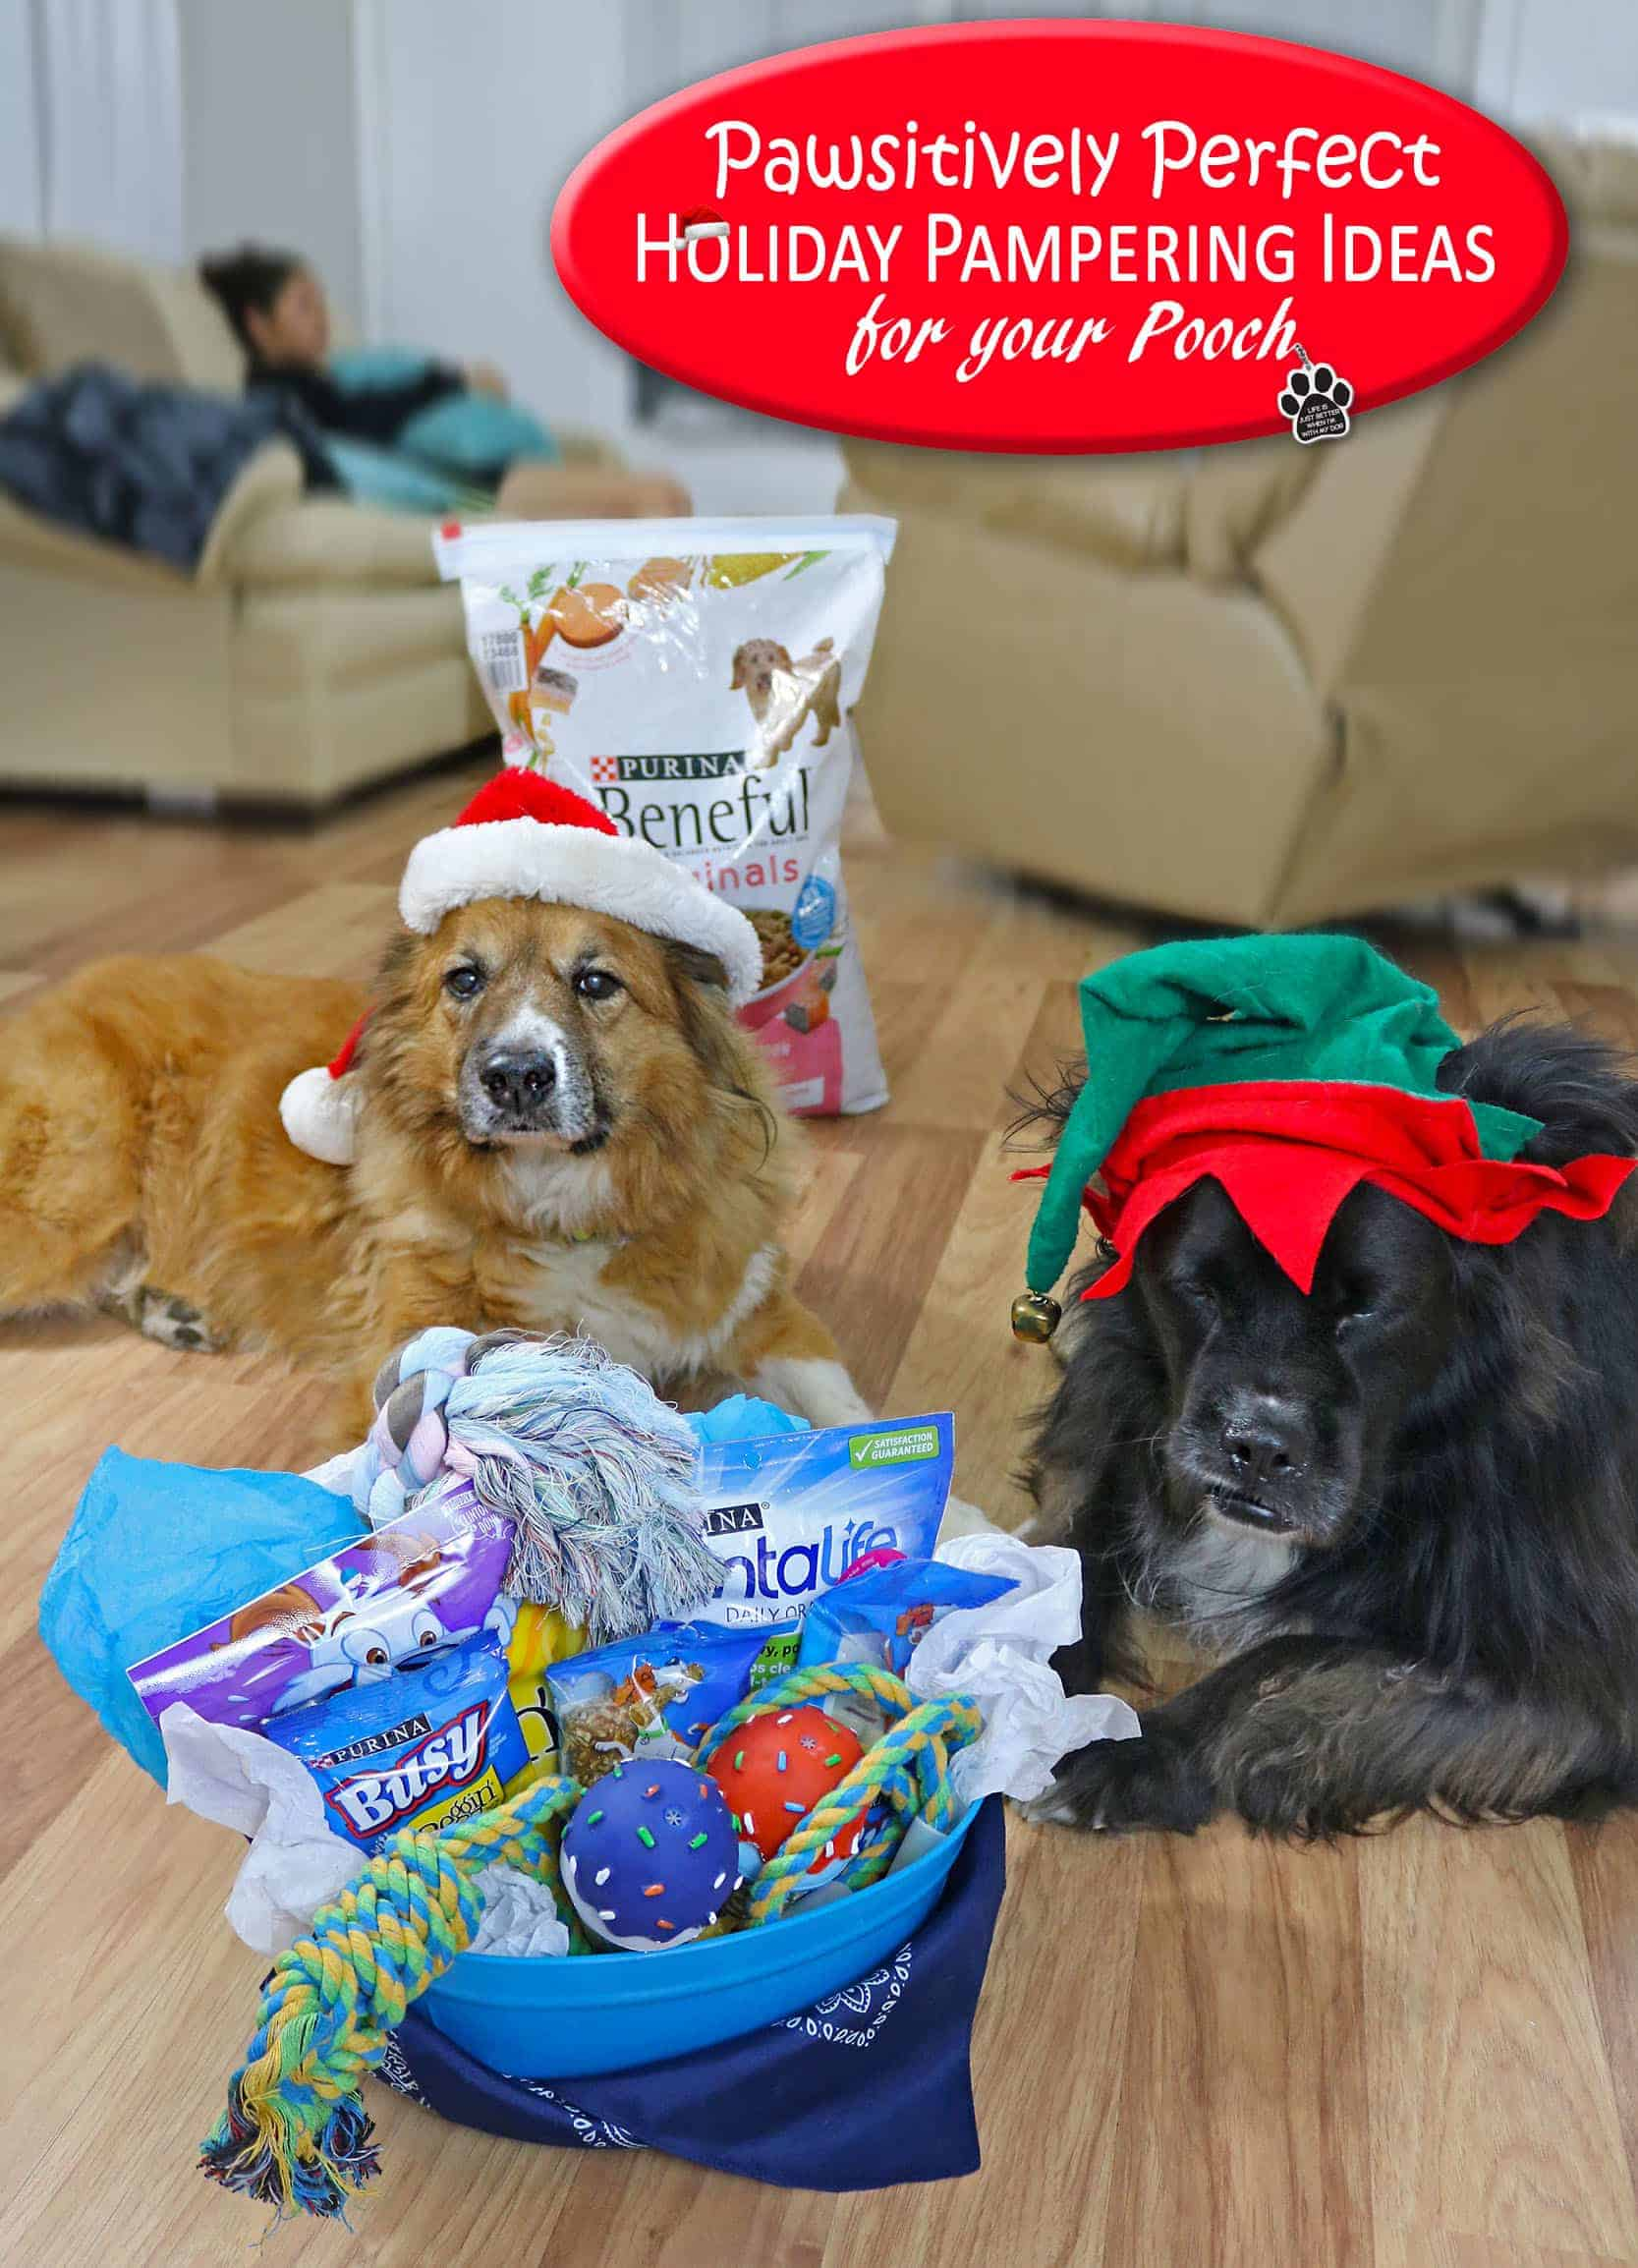 Pawsitively Perfect Holiday Pampering Ideas for your Pooch #ToPetsWithLove #AD